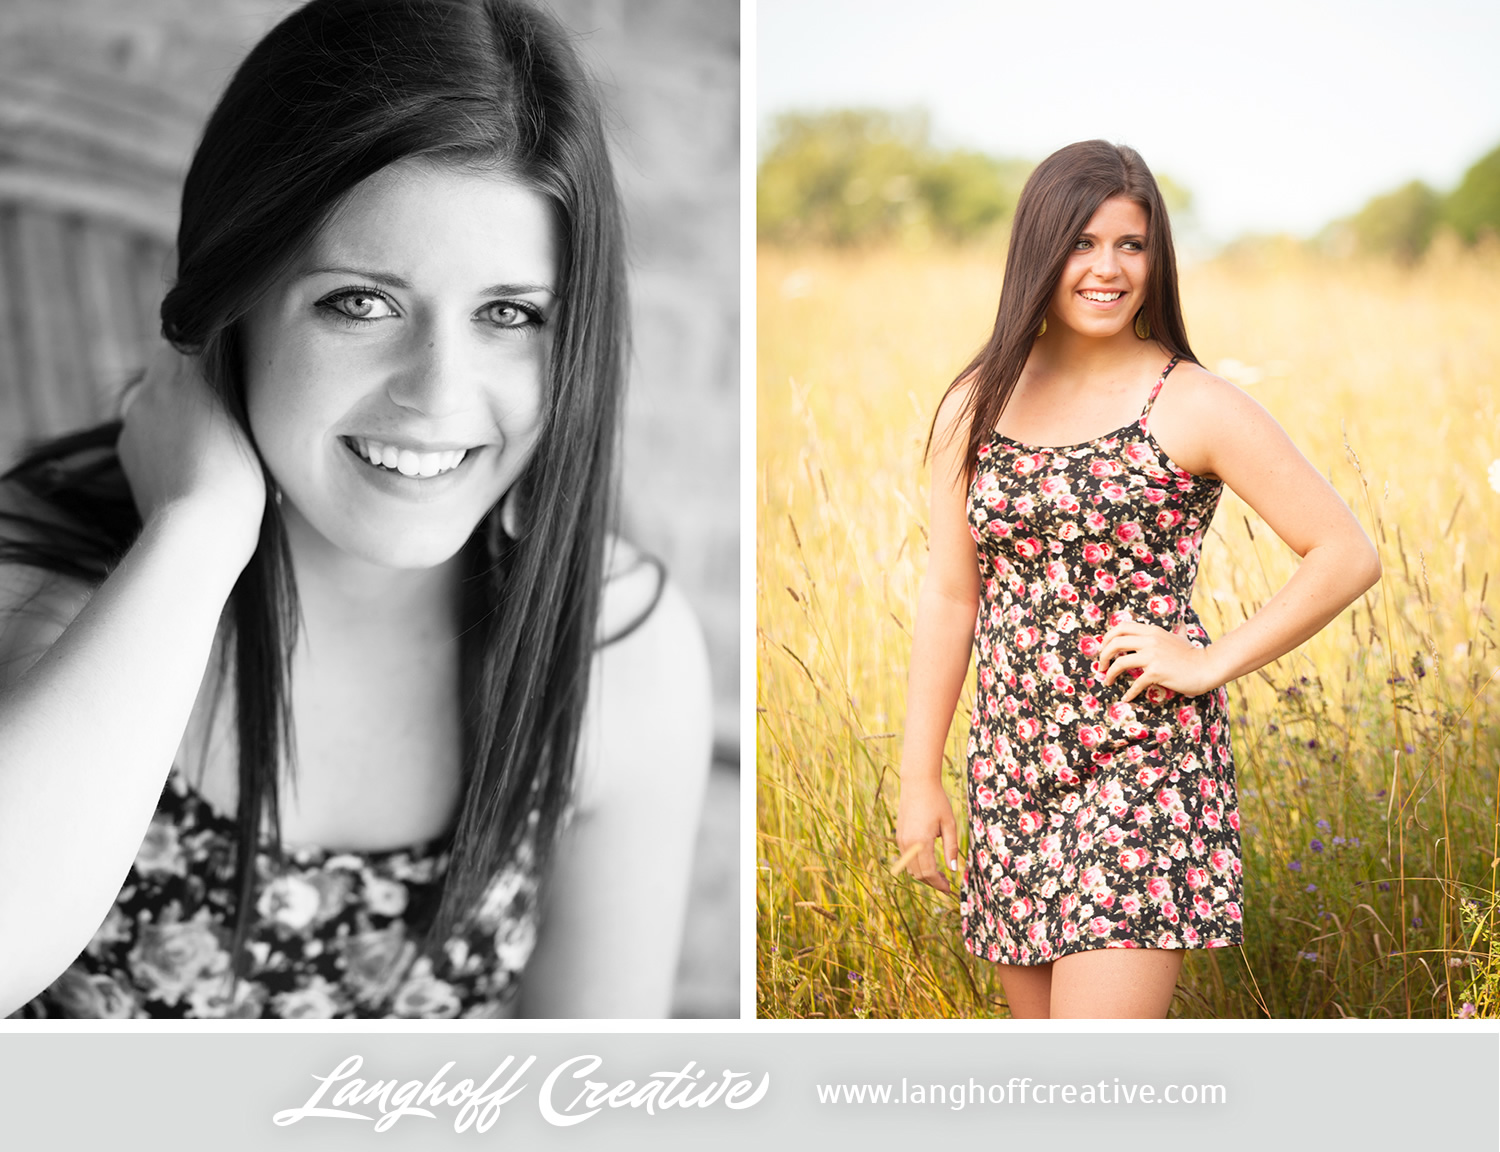 RacineSeniorPortraits-HighSchoolSeniorPhotography-LanghoffCreative-Natalie2014-classof2015-2-photo.jpg